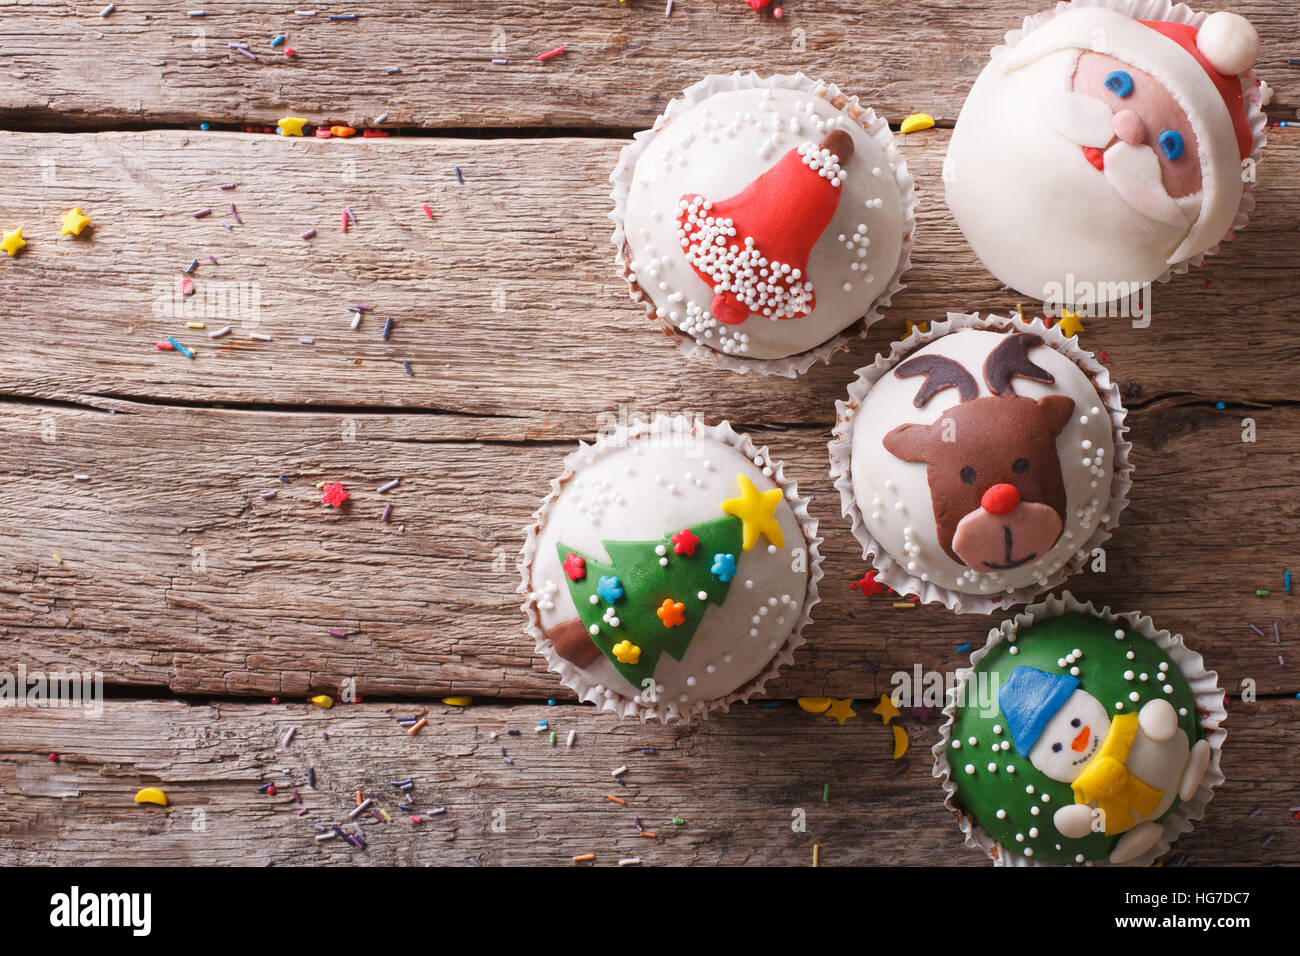 Christmas sweets: cupcakes closeup on a wooden table. horizontal top view - Stock Image